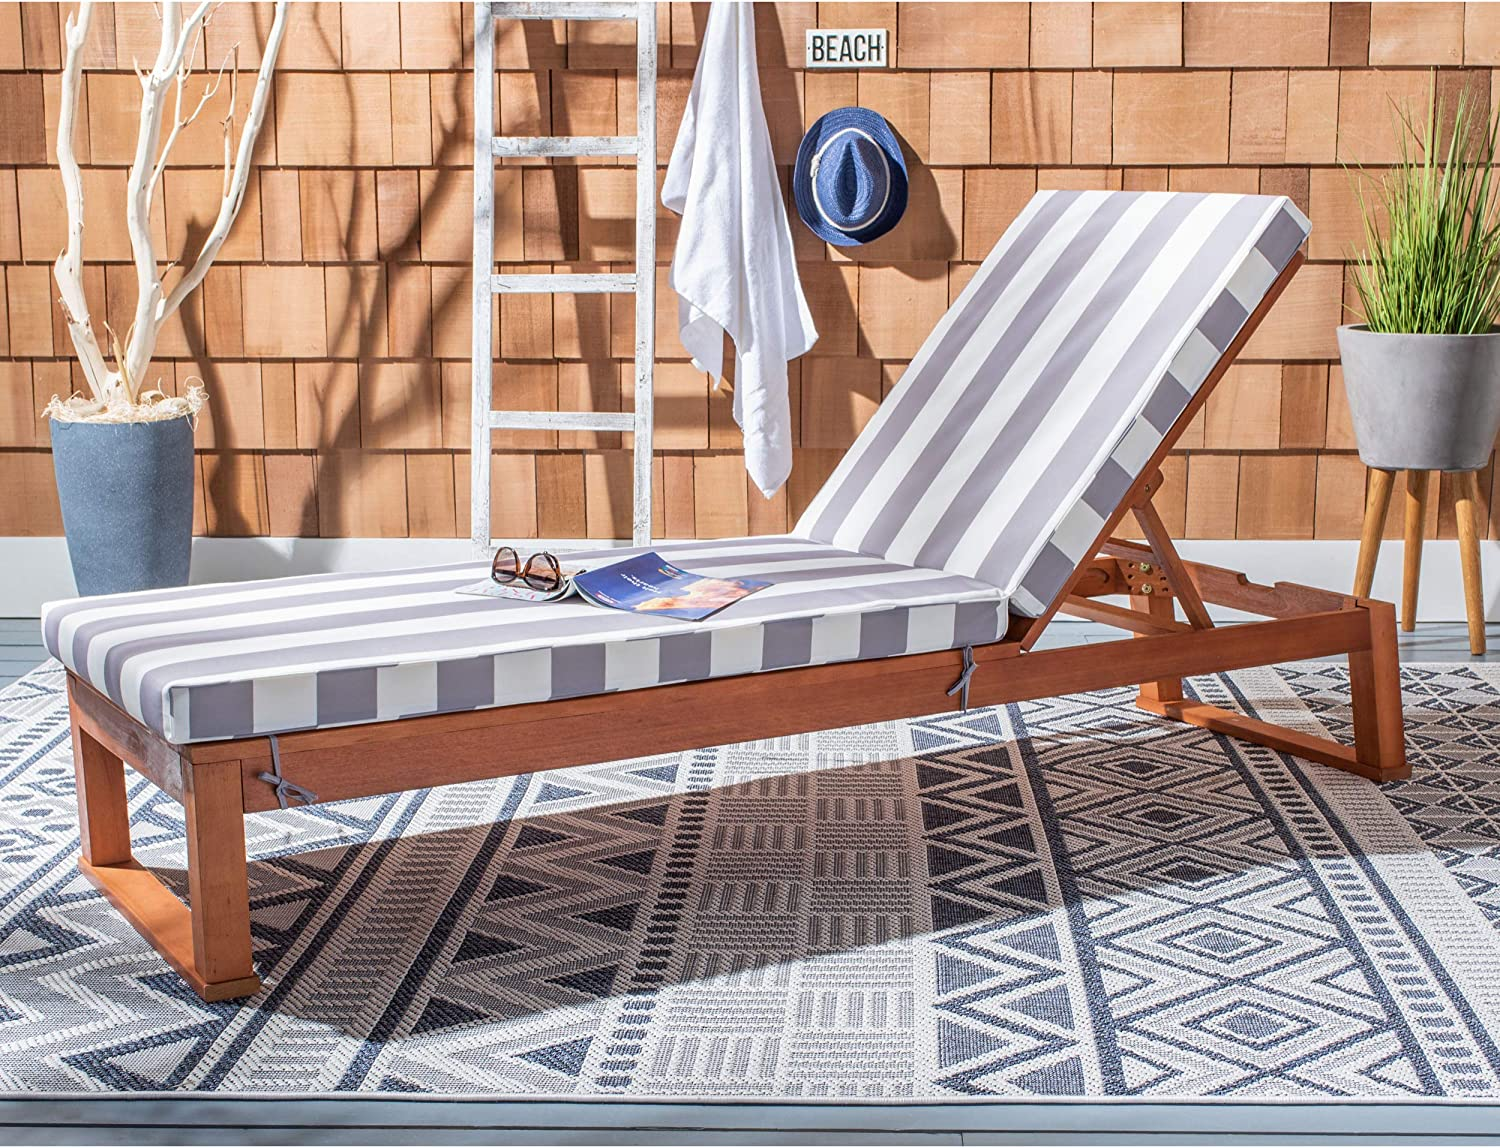 Safavieh PAT7024G Outdoor Collection Solano Wood Stripe Cushion Patio Backyard Chaise Lounger Chair Sunlounger, Natural/Grey